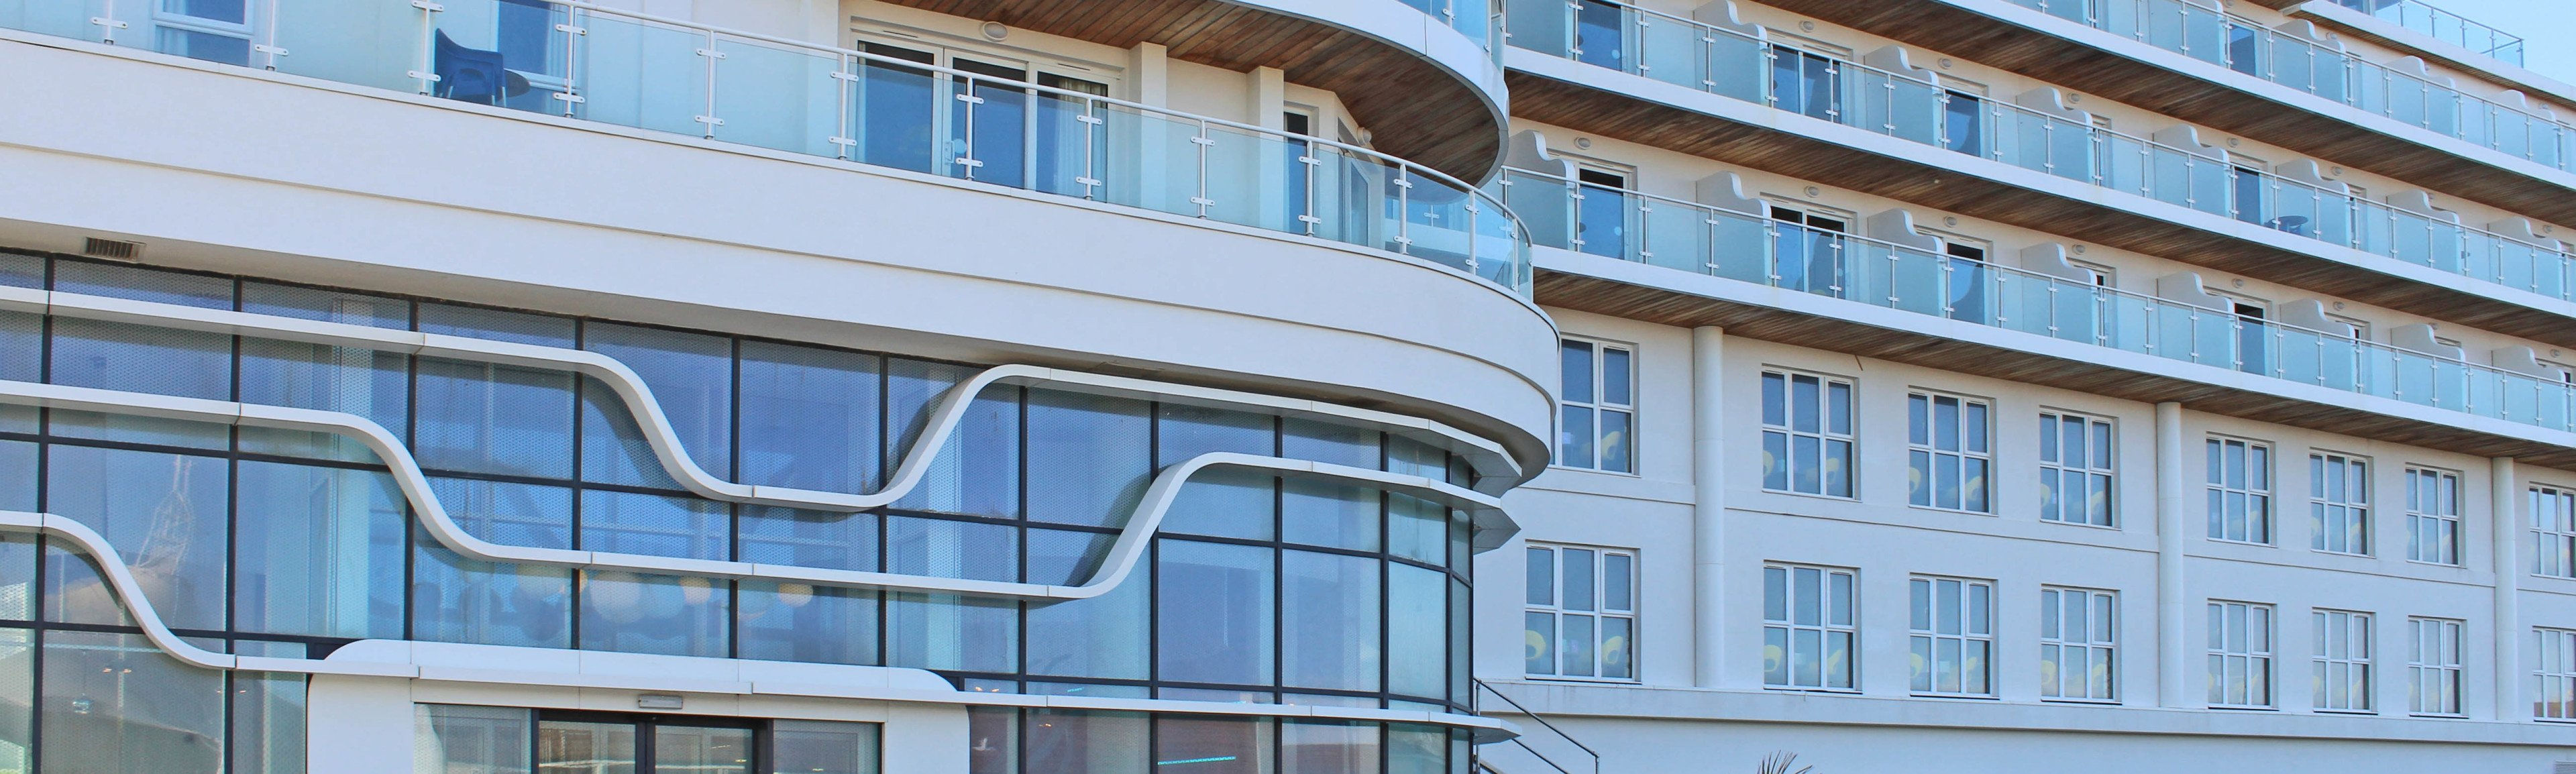 The Wave Hotel, Bognor Regis